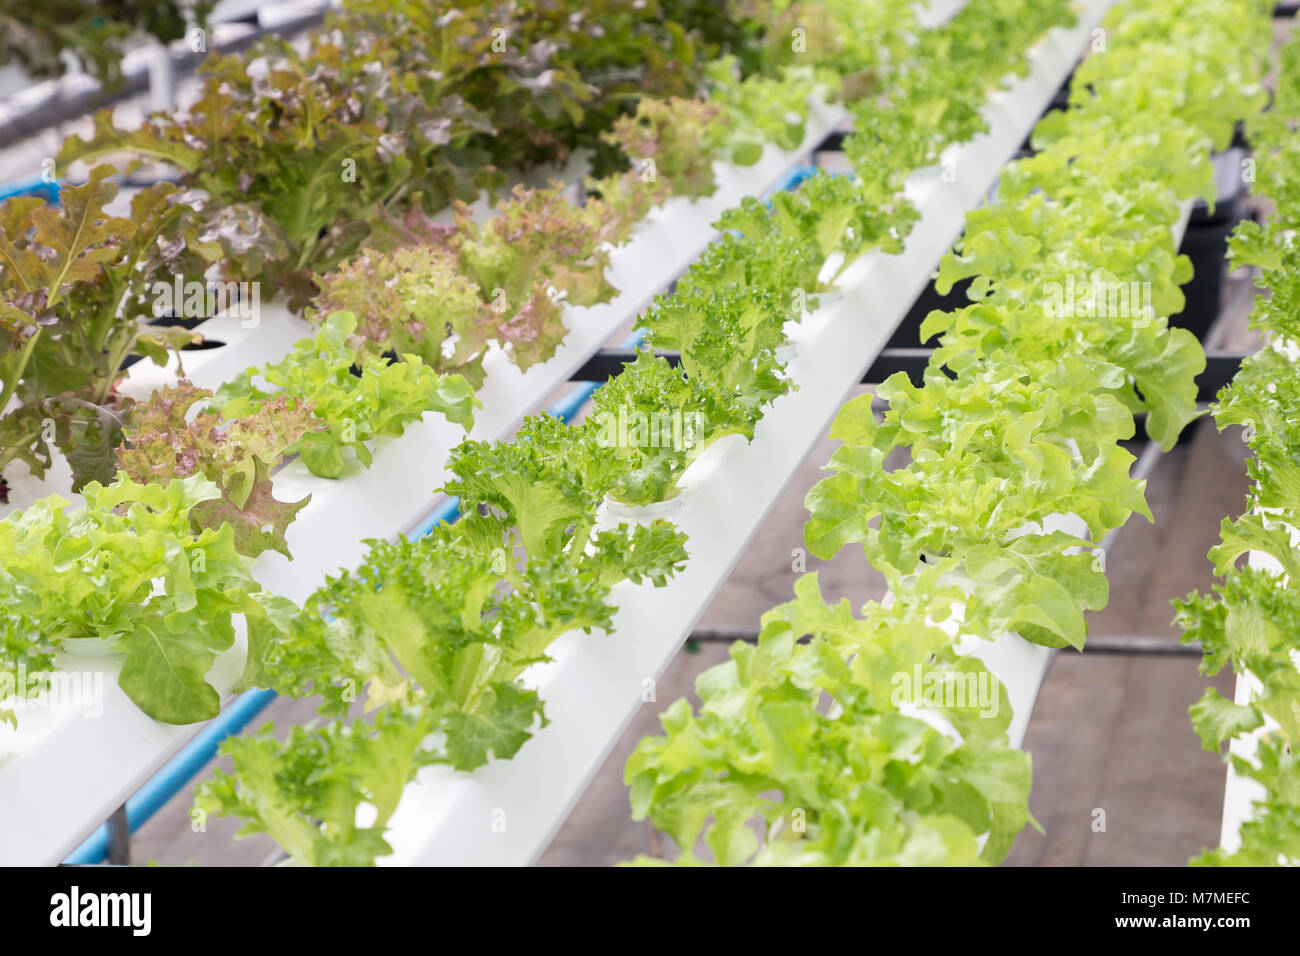 Hydroponics system greenhouse and organic vegetables salad in Stock